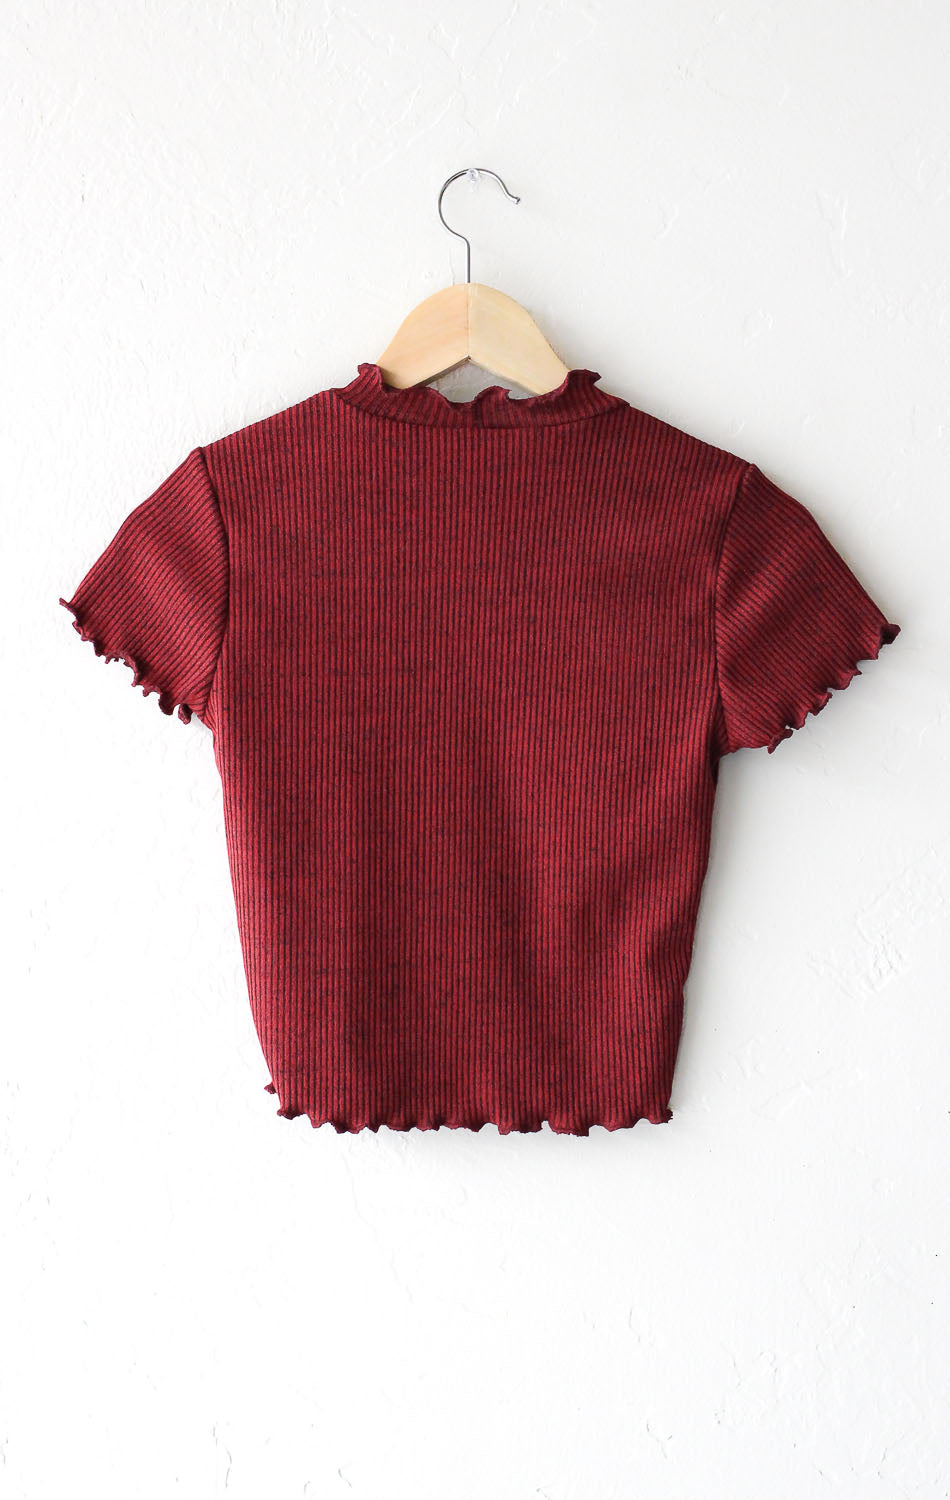 Ribbed Crop Top - Burgundy